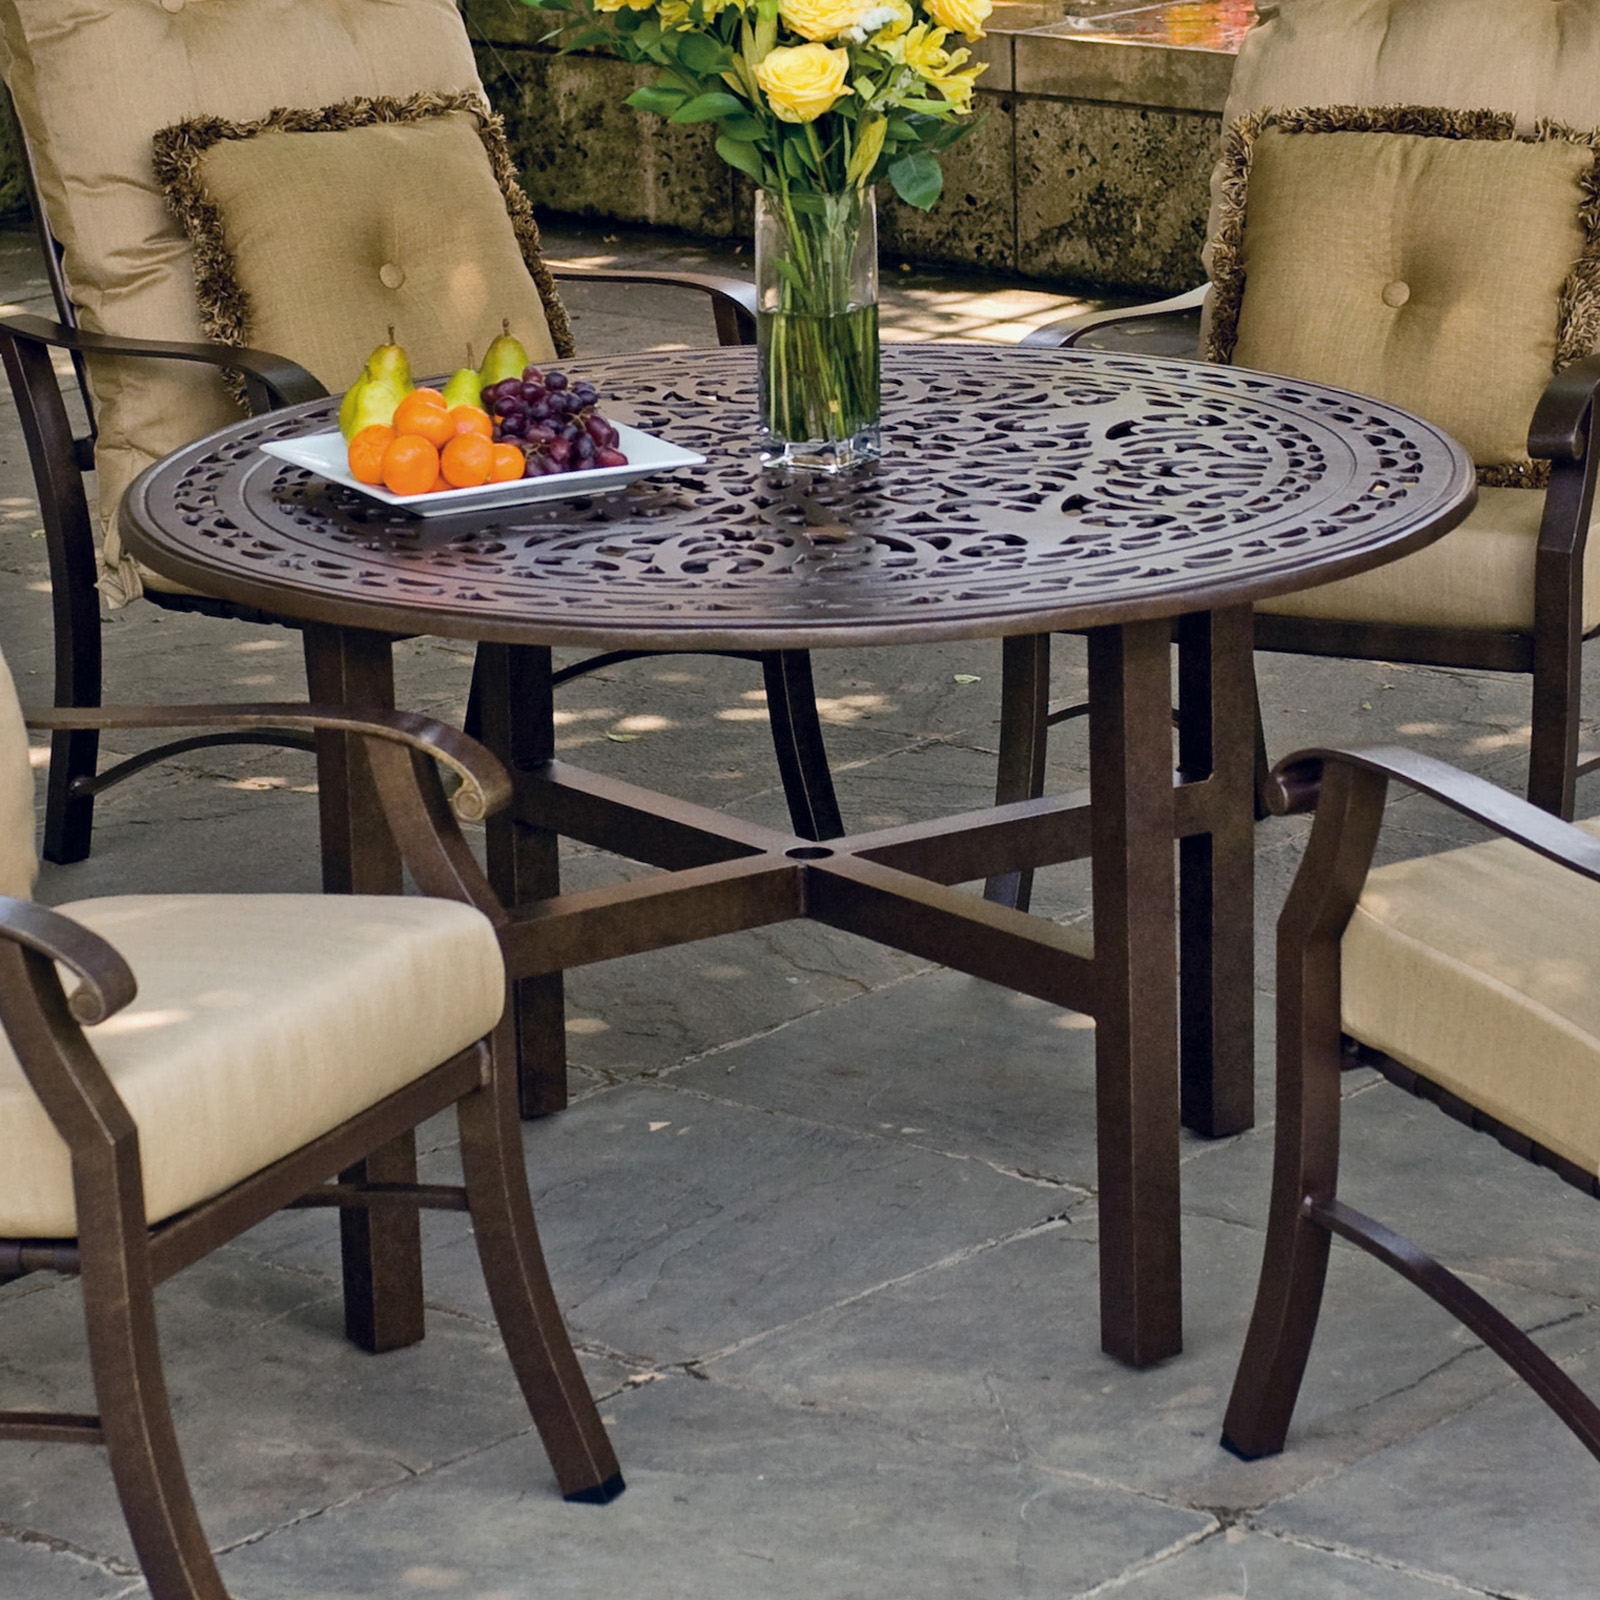 ... Vintage Counter Height Patio Dining Table - Patio Dining Tables at